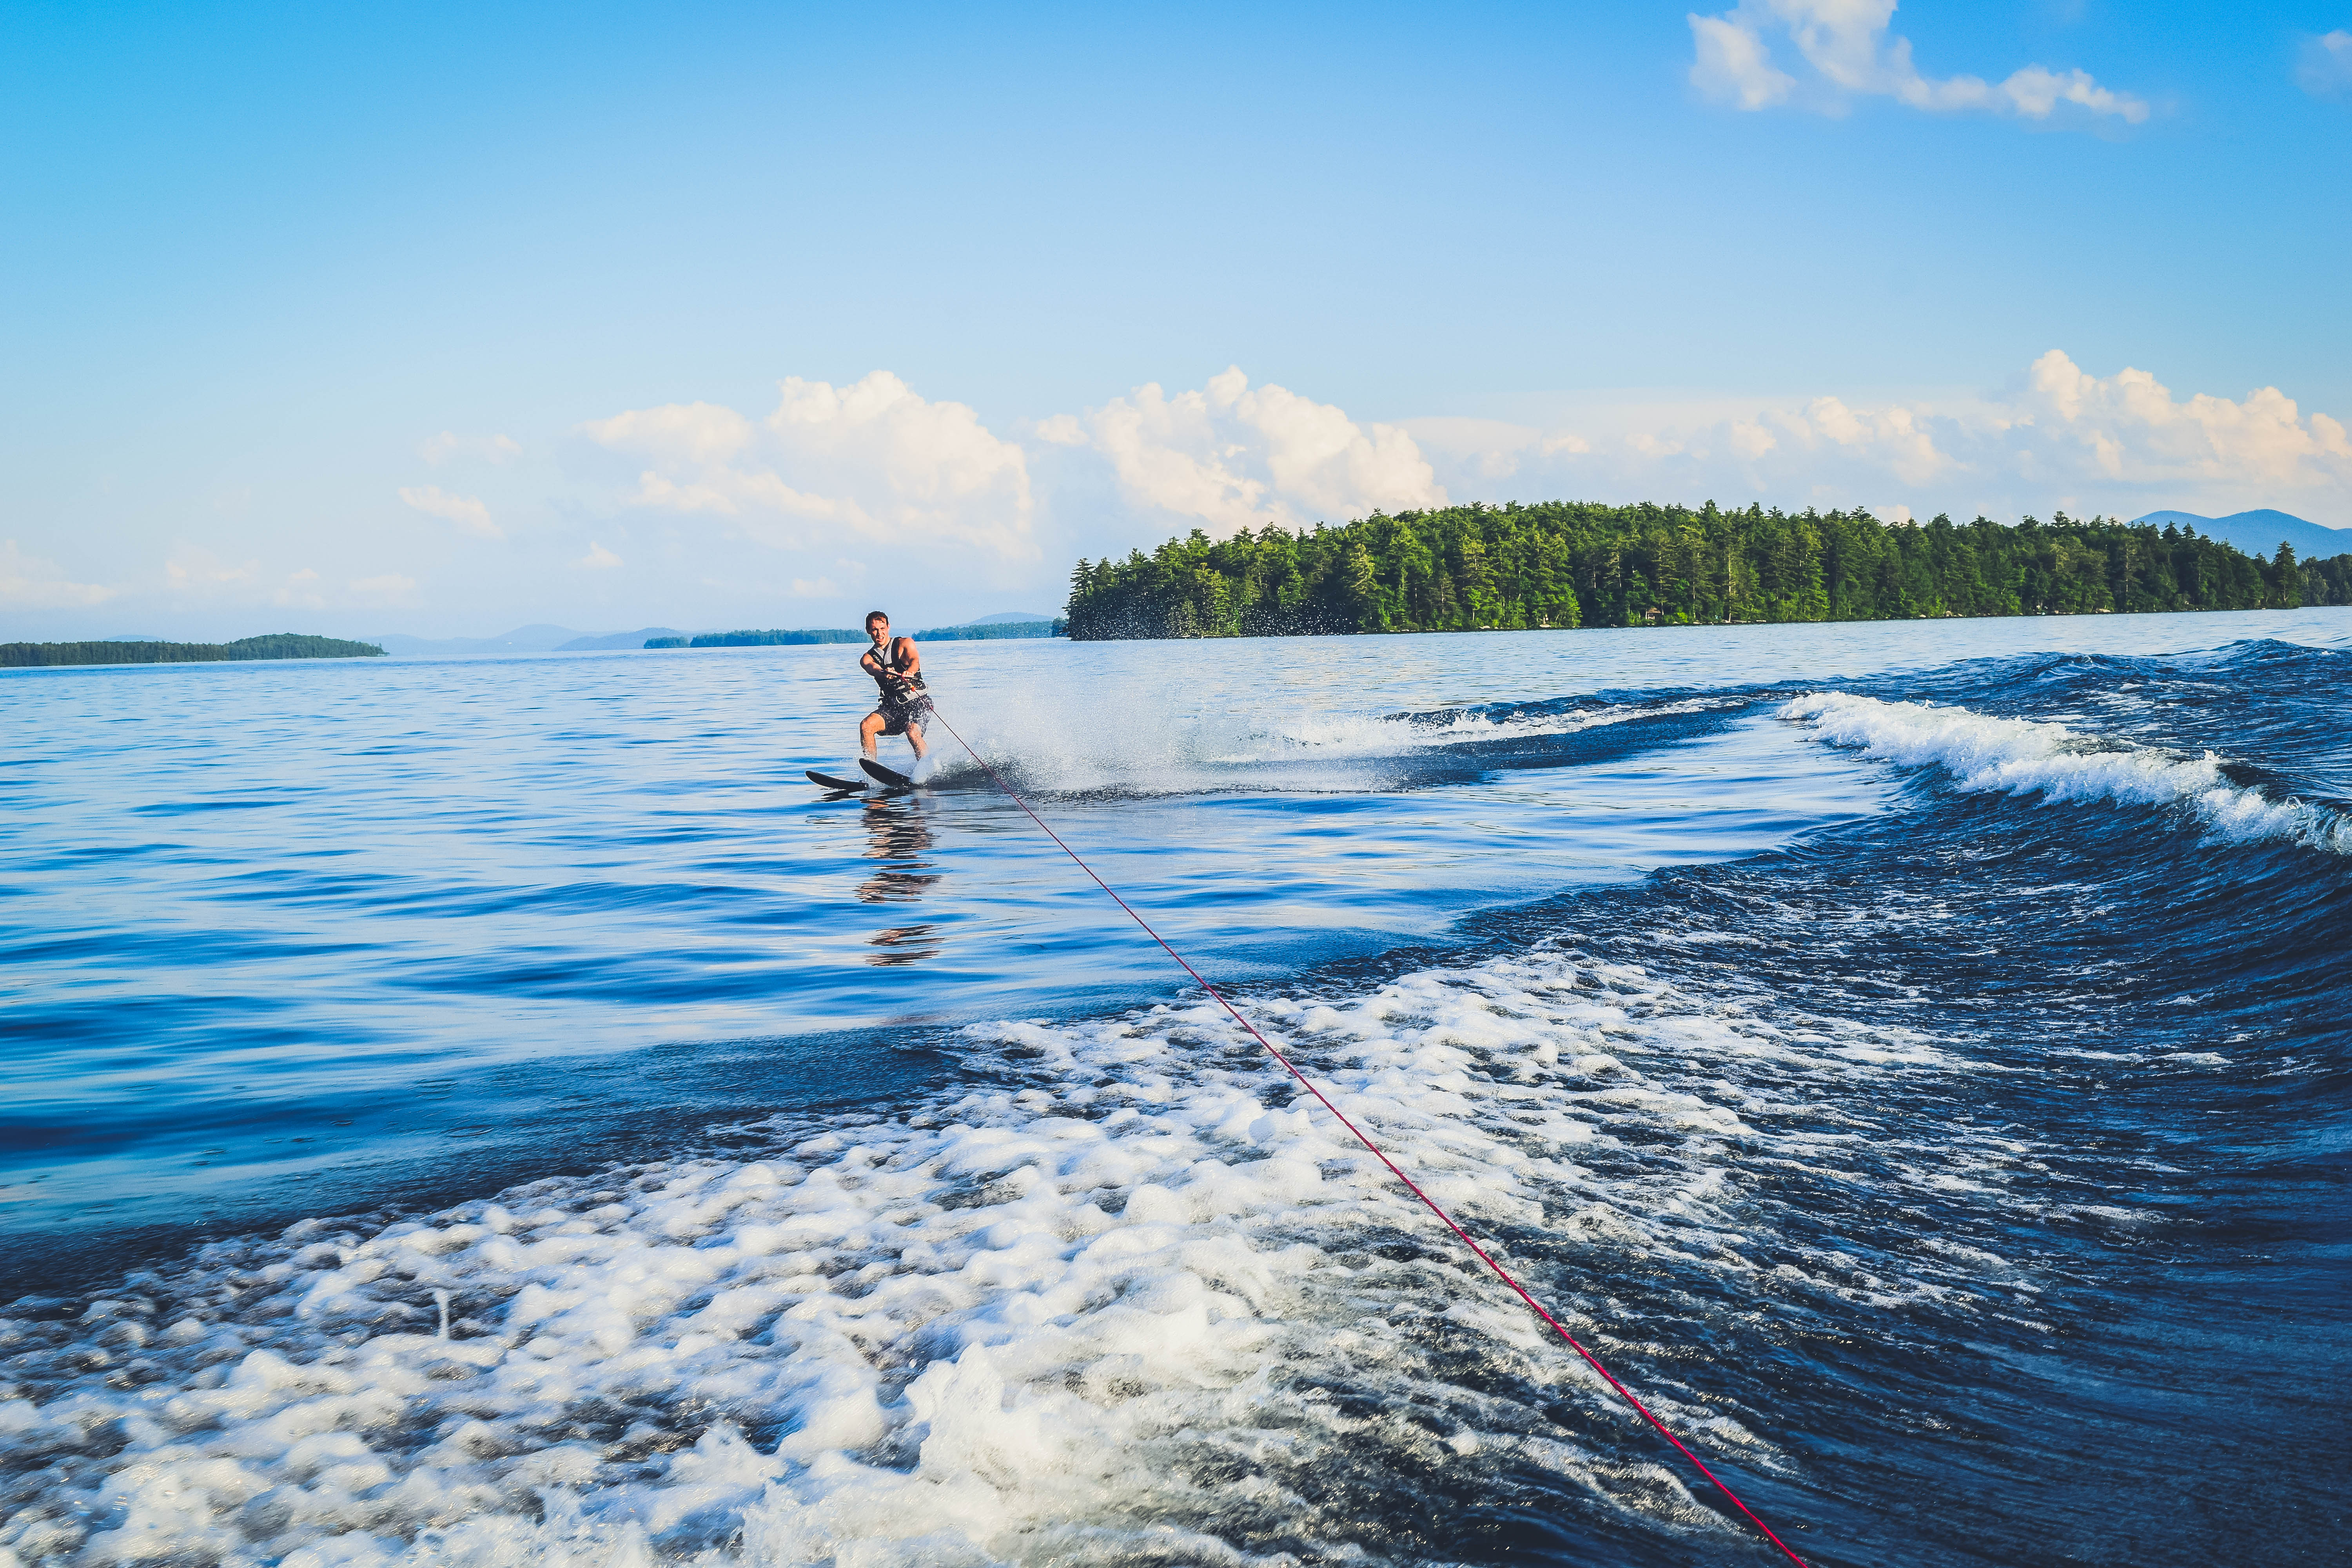 Lake Winnipesaukee_New Hampshire_Travel Guide_What to do_What to See_waterski_man_adventure_sport_water_nature_mountains